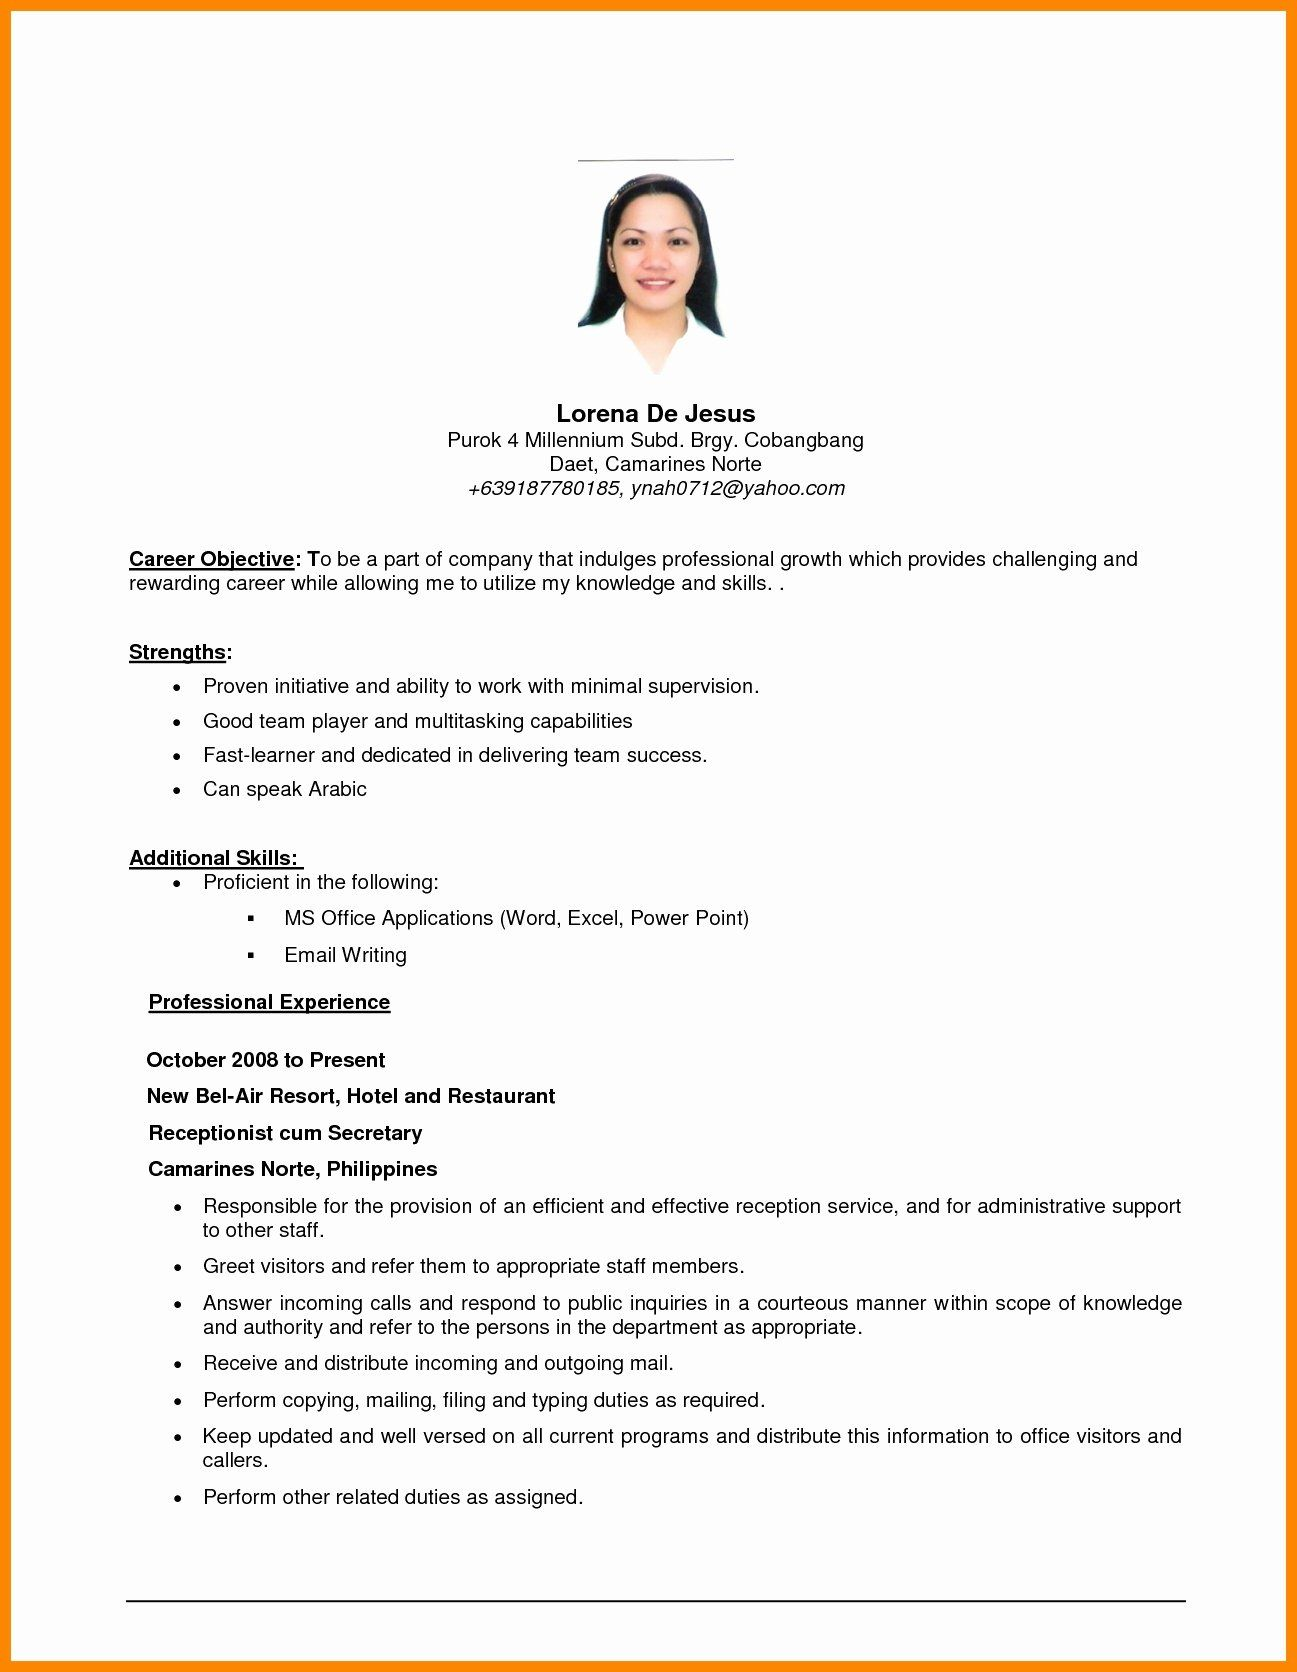 generic objective for resume inspirational general examples sample job career objectives Resume Resume Objective Examples